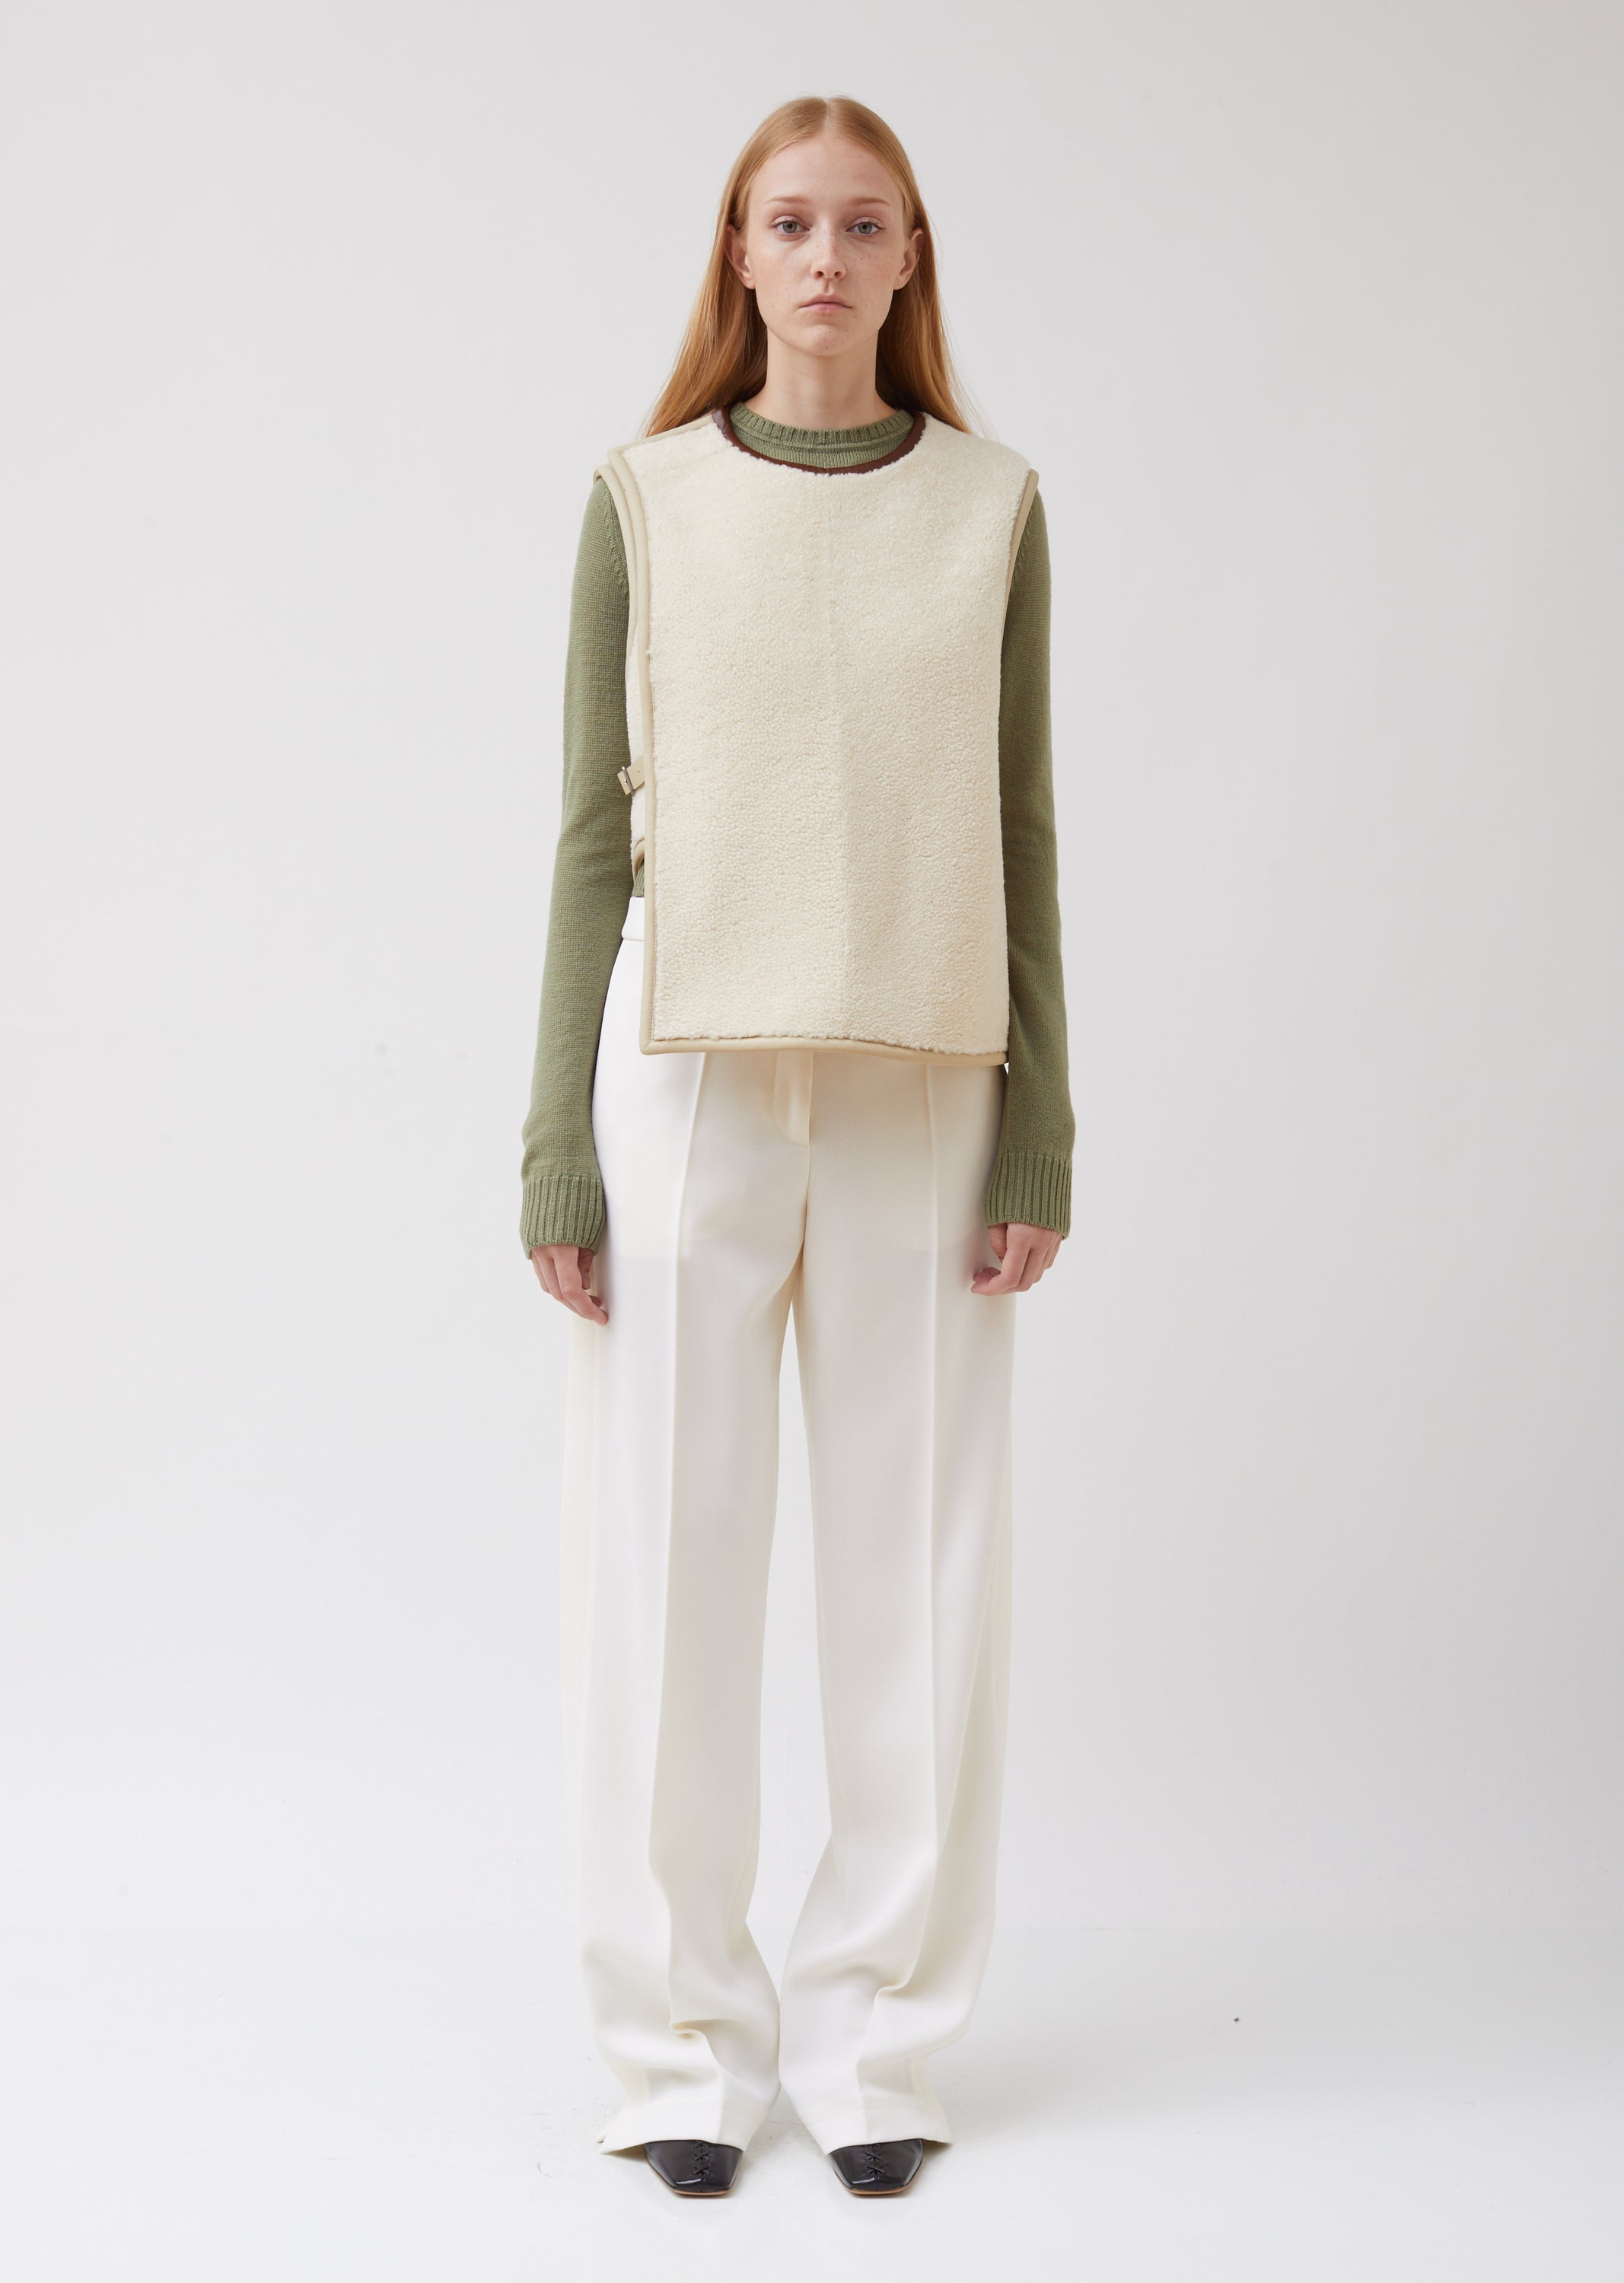 Lyle Lh Shearling Top